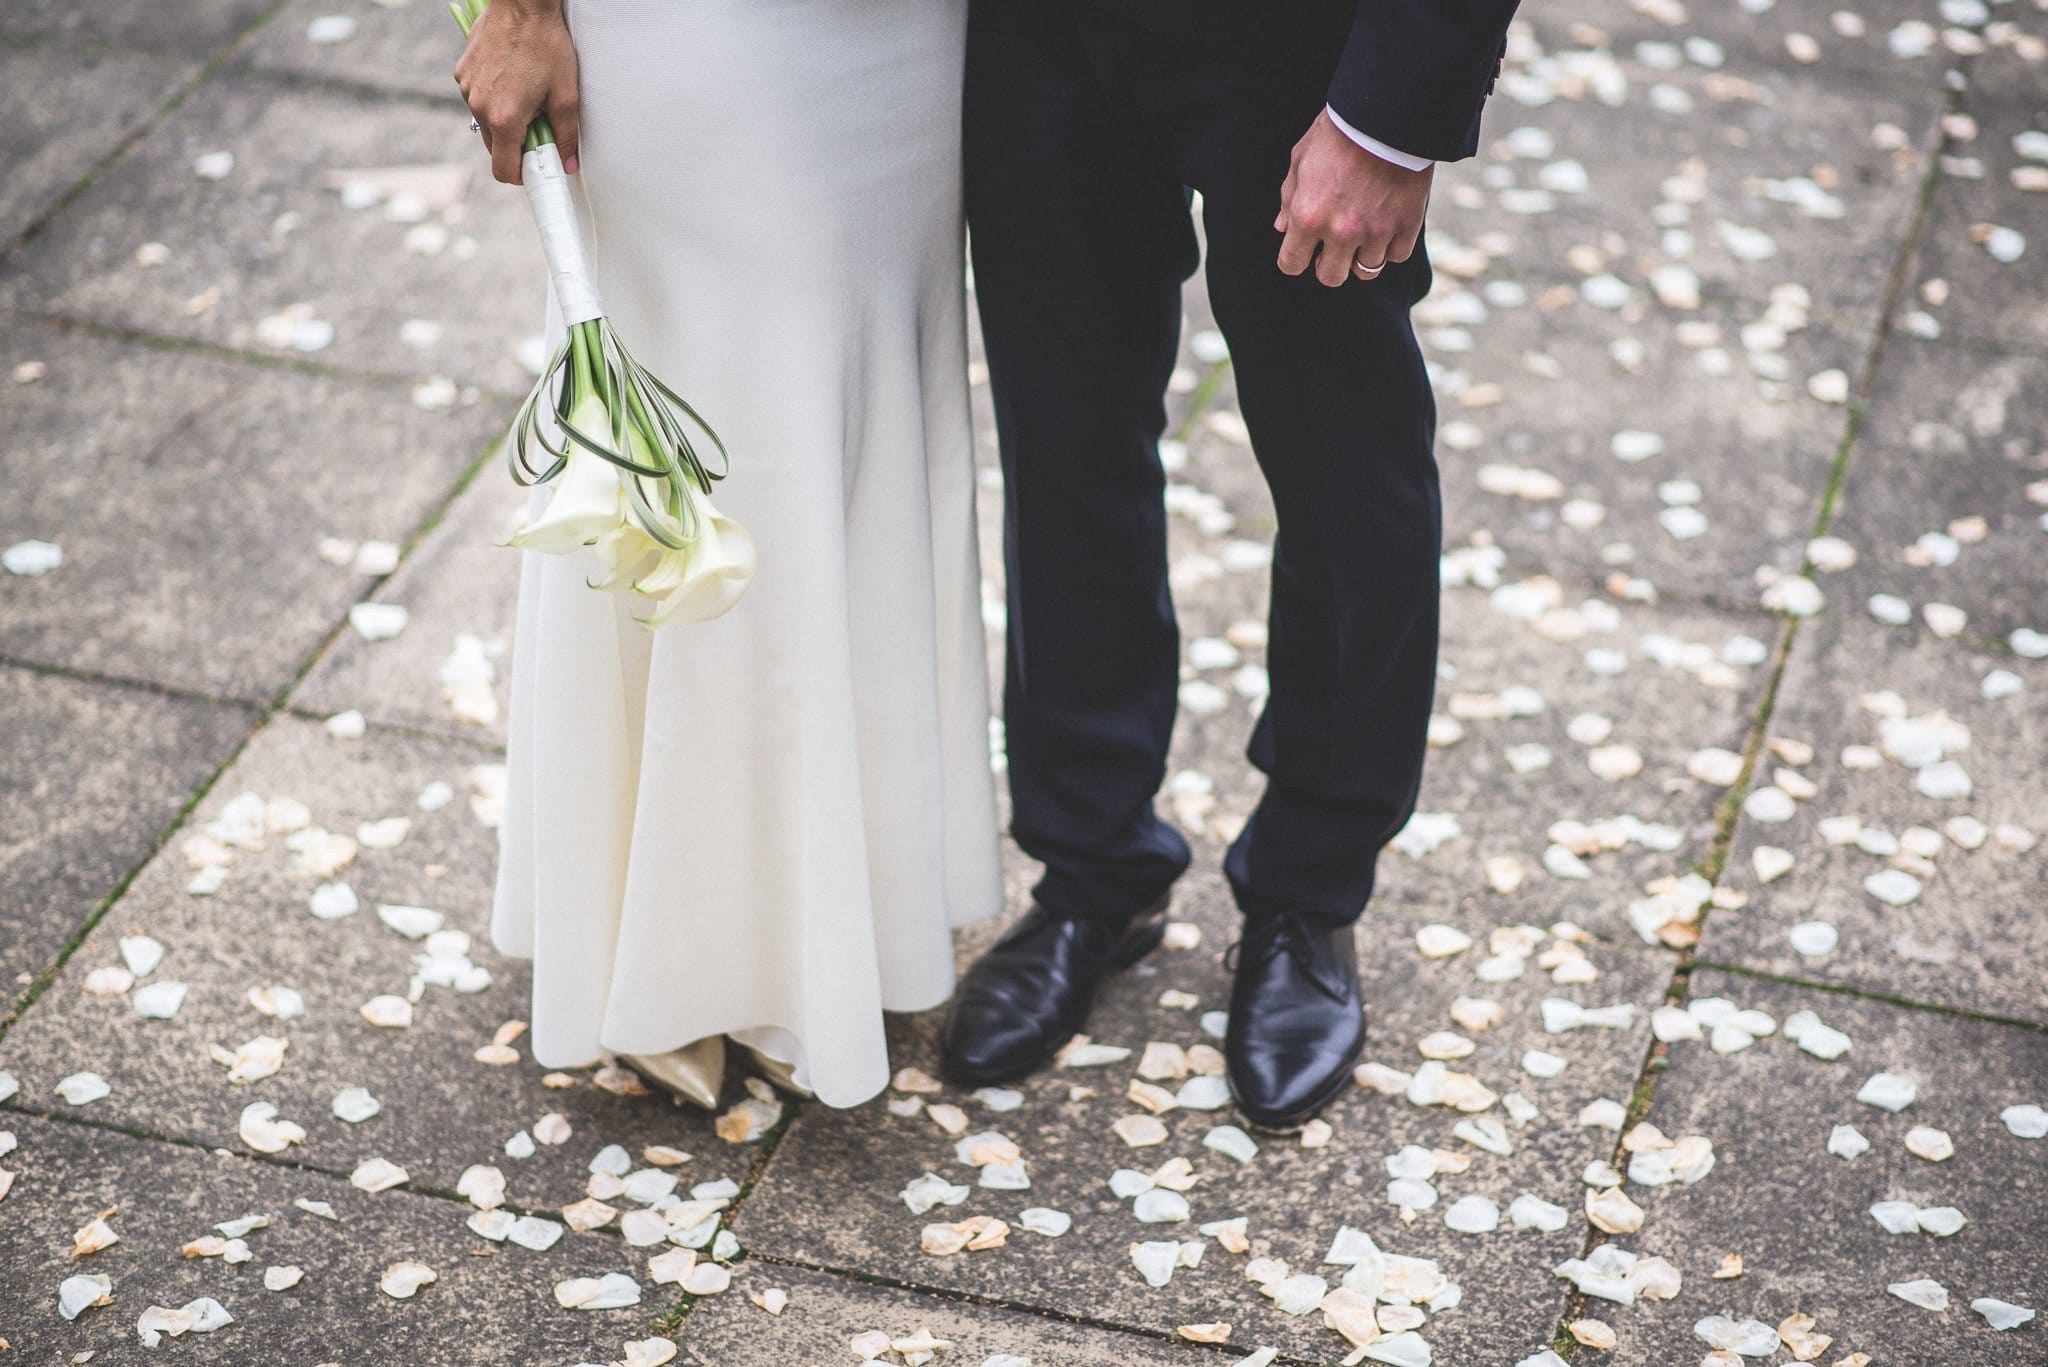 A three-quarter length shot of Marco and Ilaria from the waist down, standing amid the petal confetti after their wedding ceremony